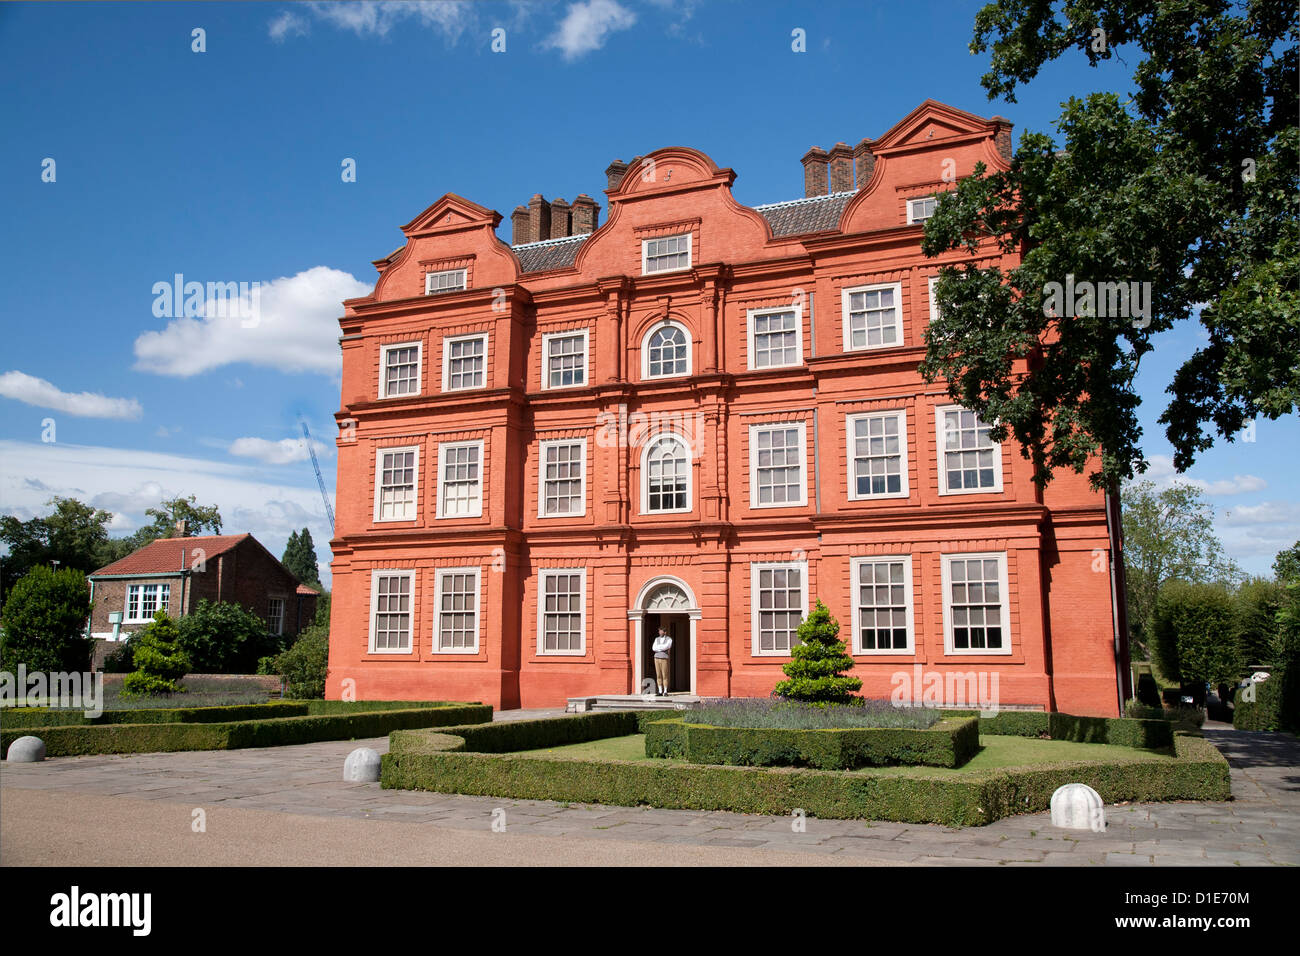 Kew Palace, Royal Botanic Gardens, UNESCO World Heritage Site, Kew, near Richmond, Surrey, England, United Kingdom, - Stock Image